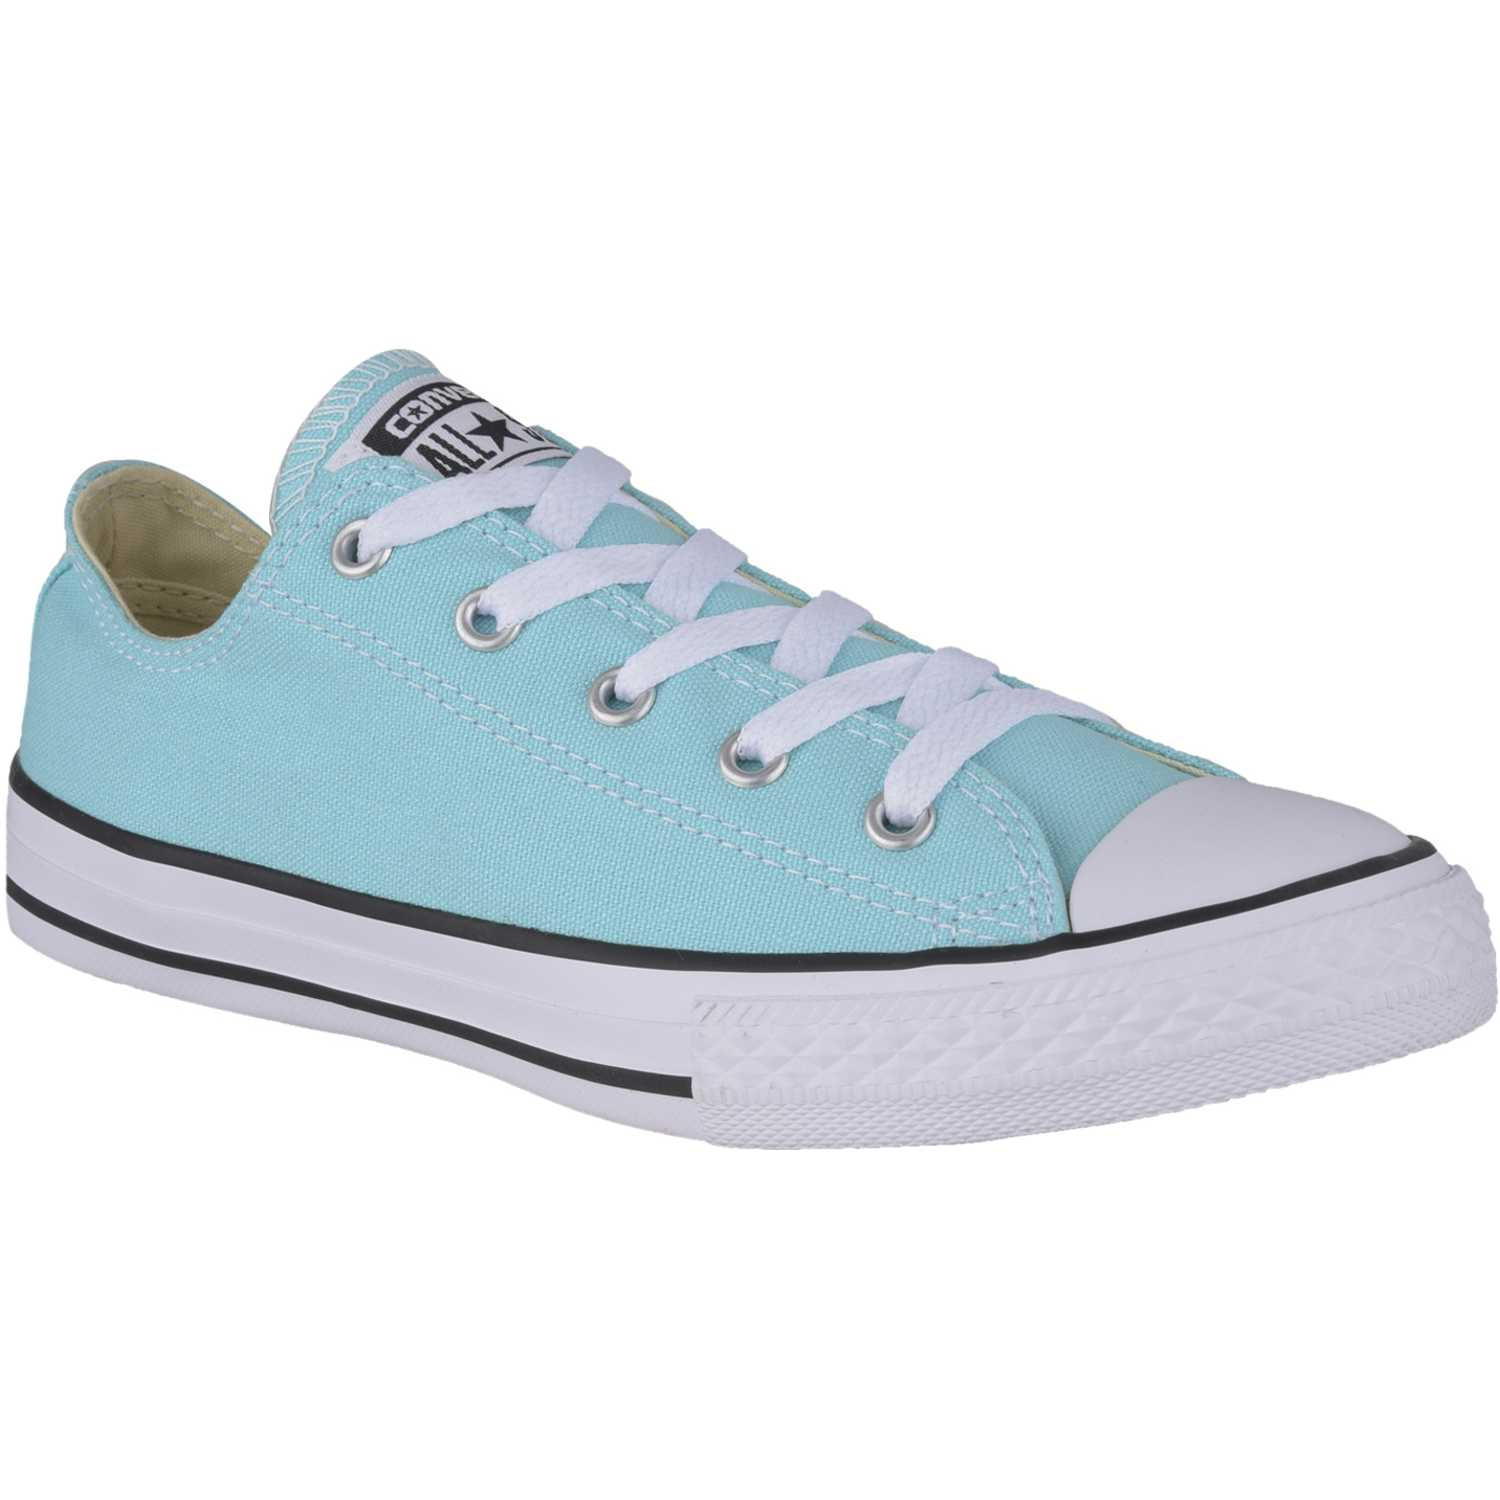 Converse ct as seasonal Aqua Walking